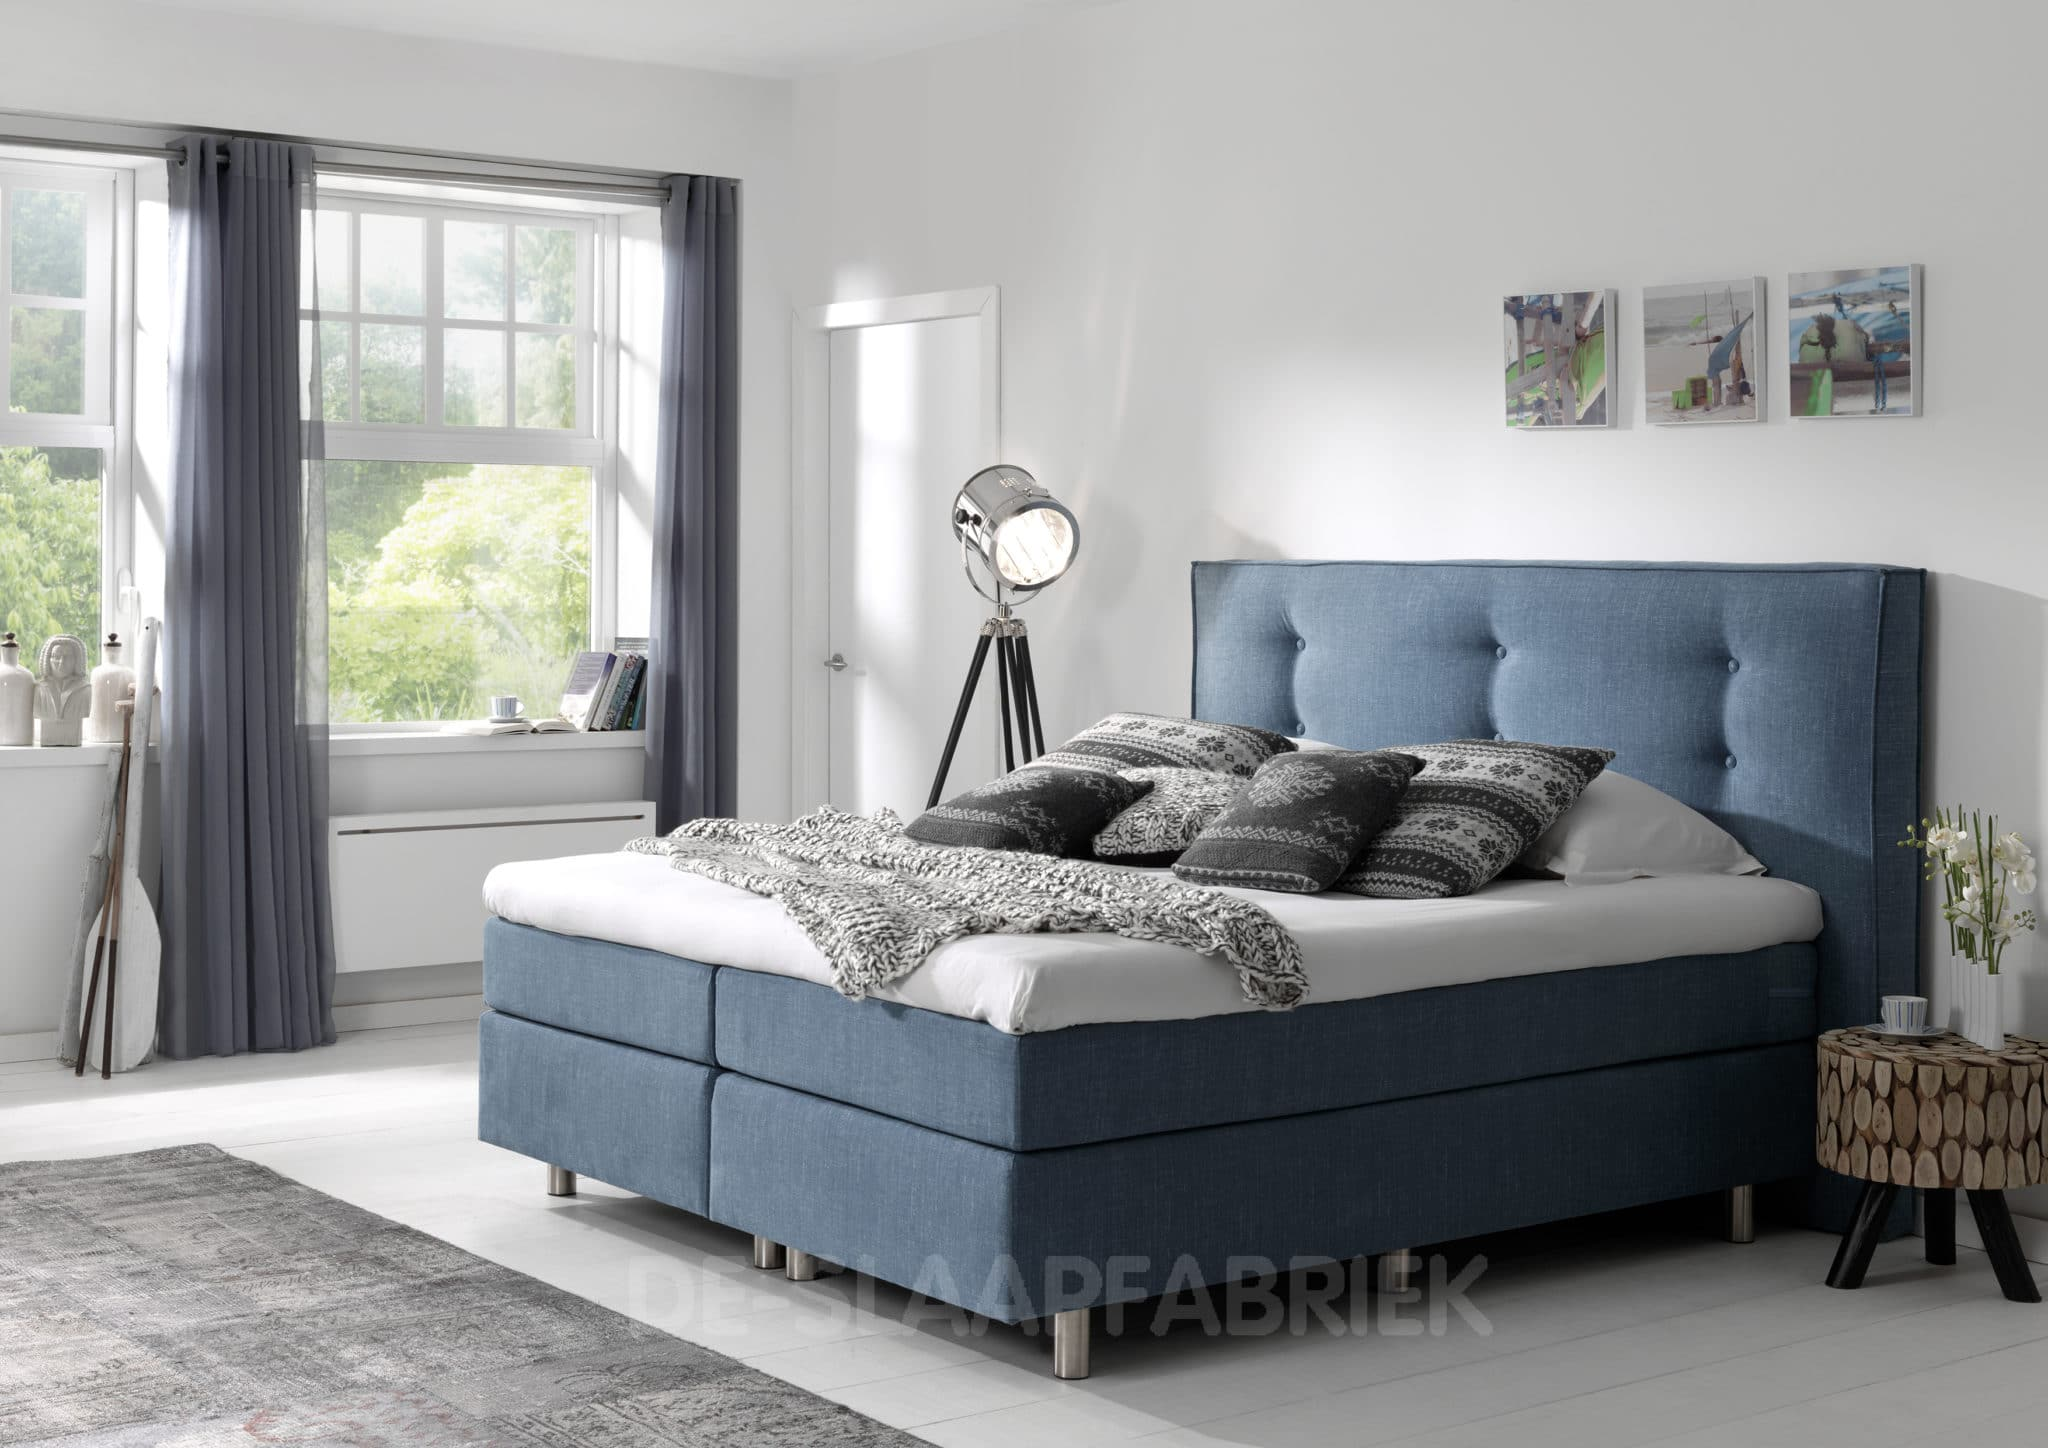 boxspring imola de slaapfabriek. Black Bedroom Furniture Sets. Home Design Ideas